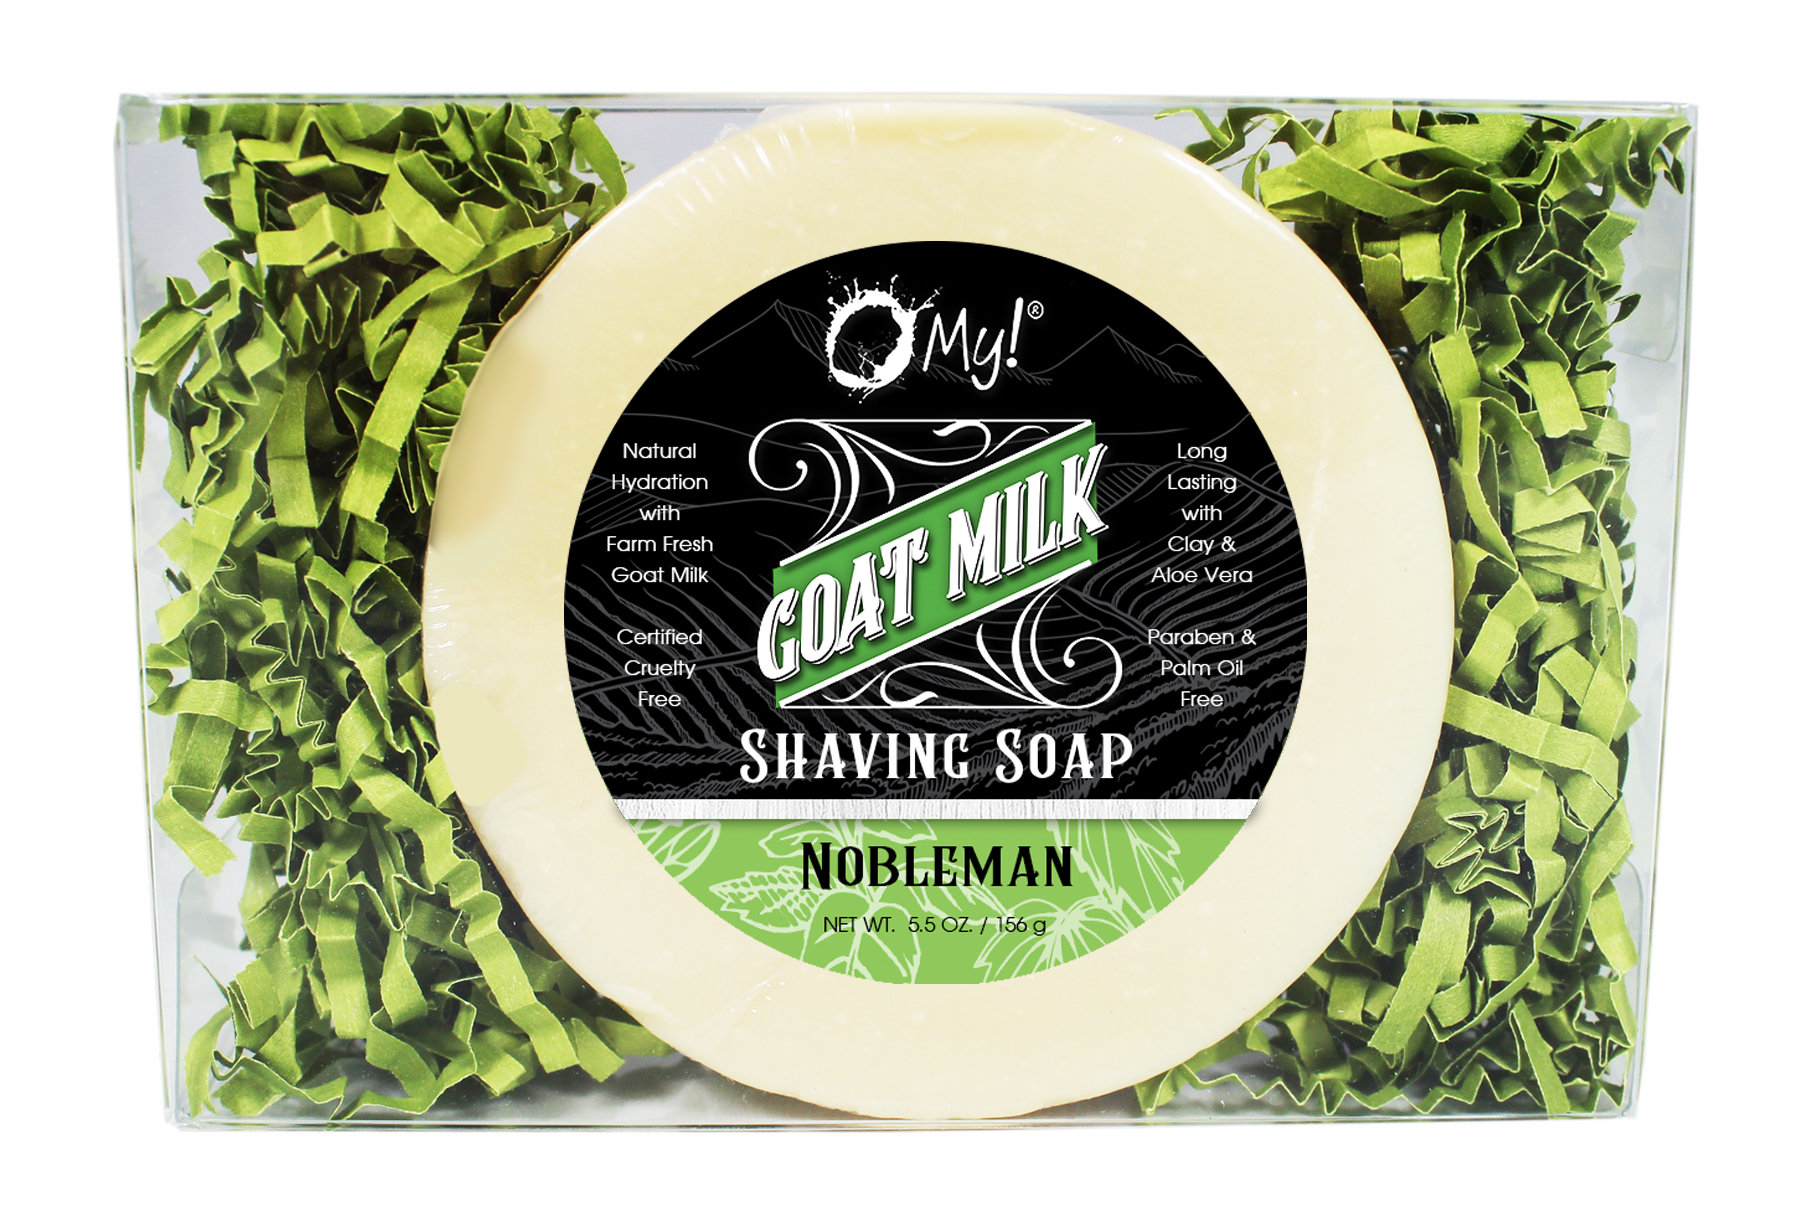 O My! Goat Milk Shaving Soap Gift Box - Nobleman | Bundle of 3 | Begin your love for healthy, goat milk wet-shaving today with O My! | Paraben Free | Leaping Bunny Certified | Handmade in USA